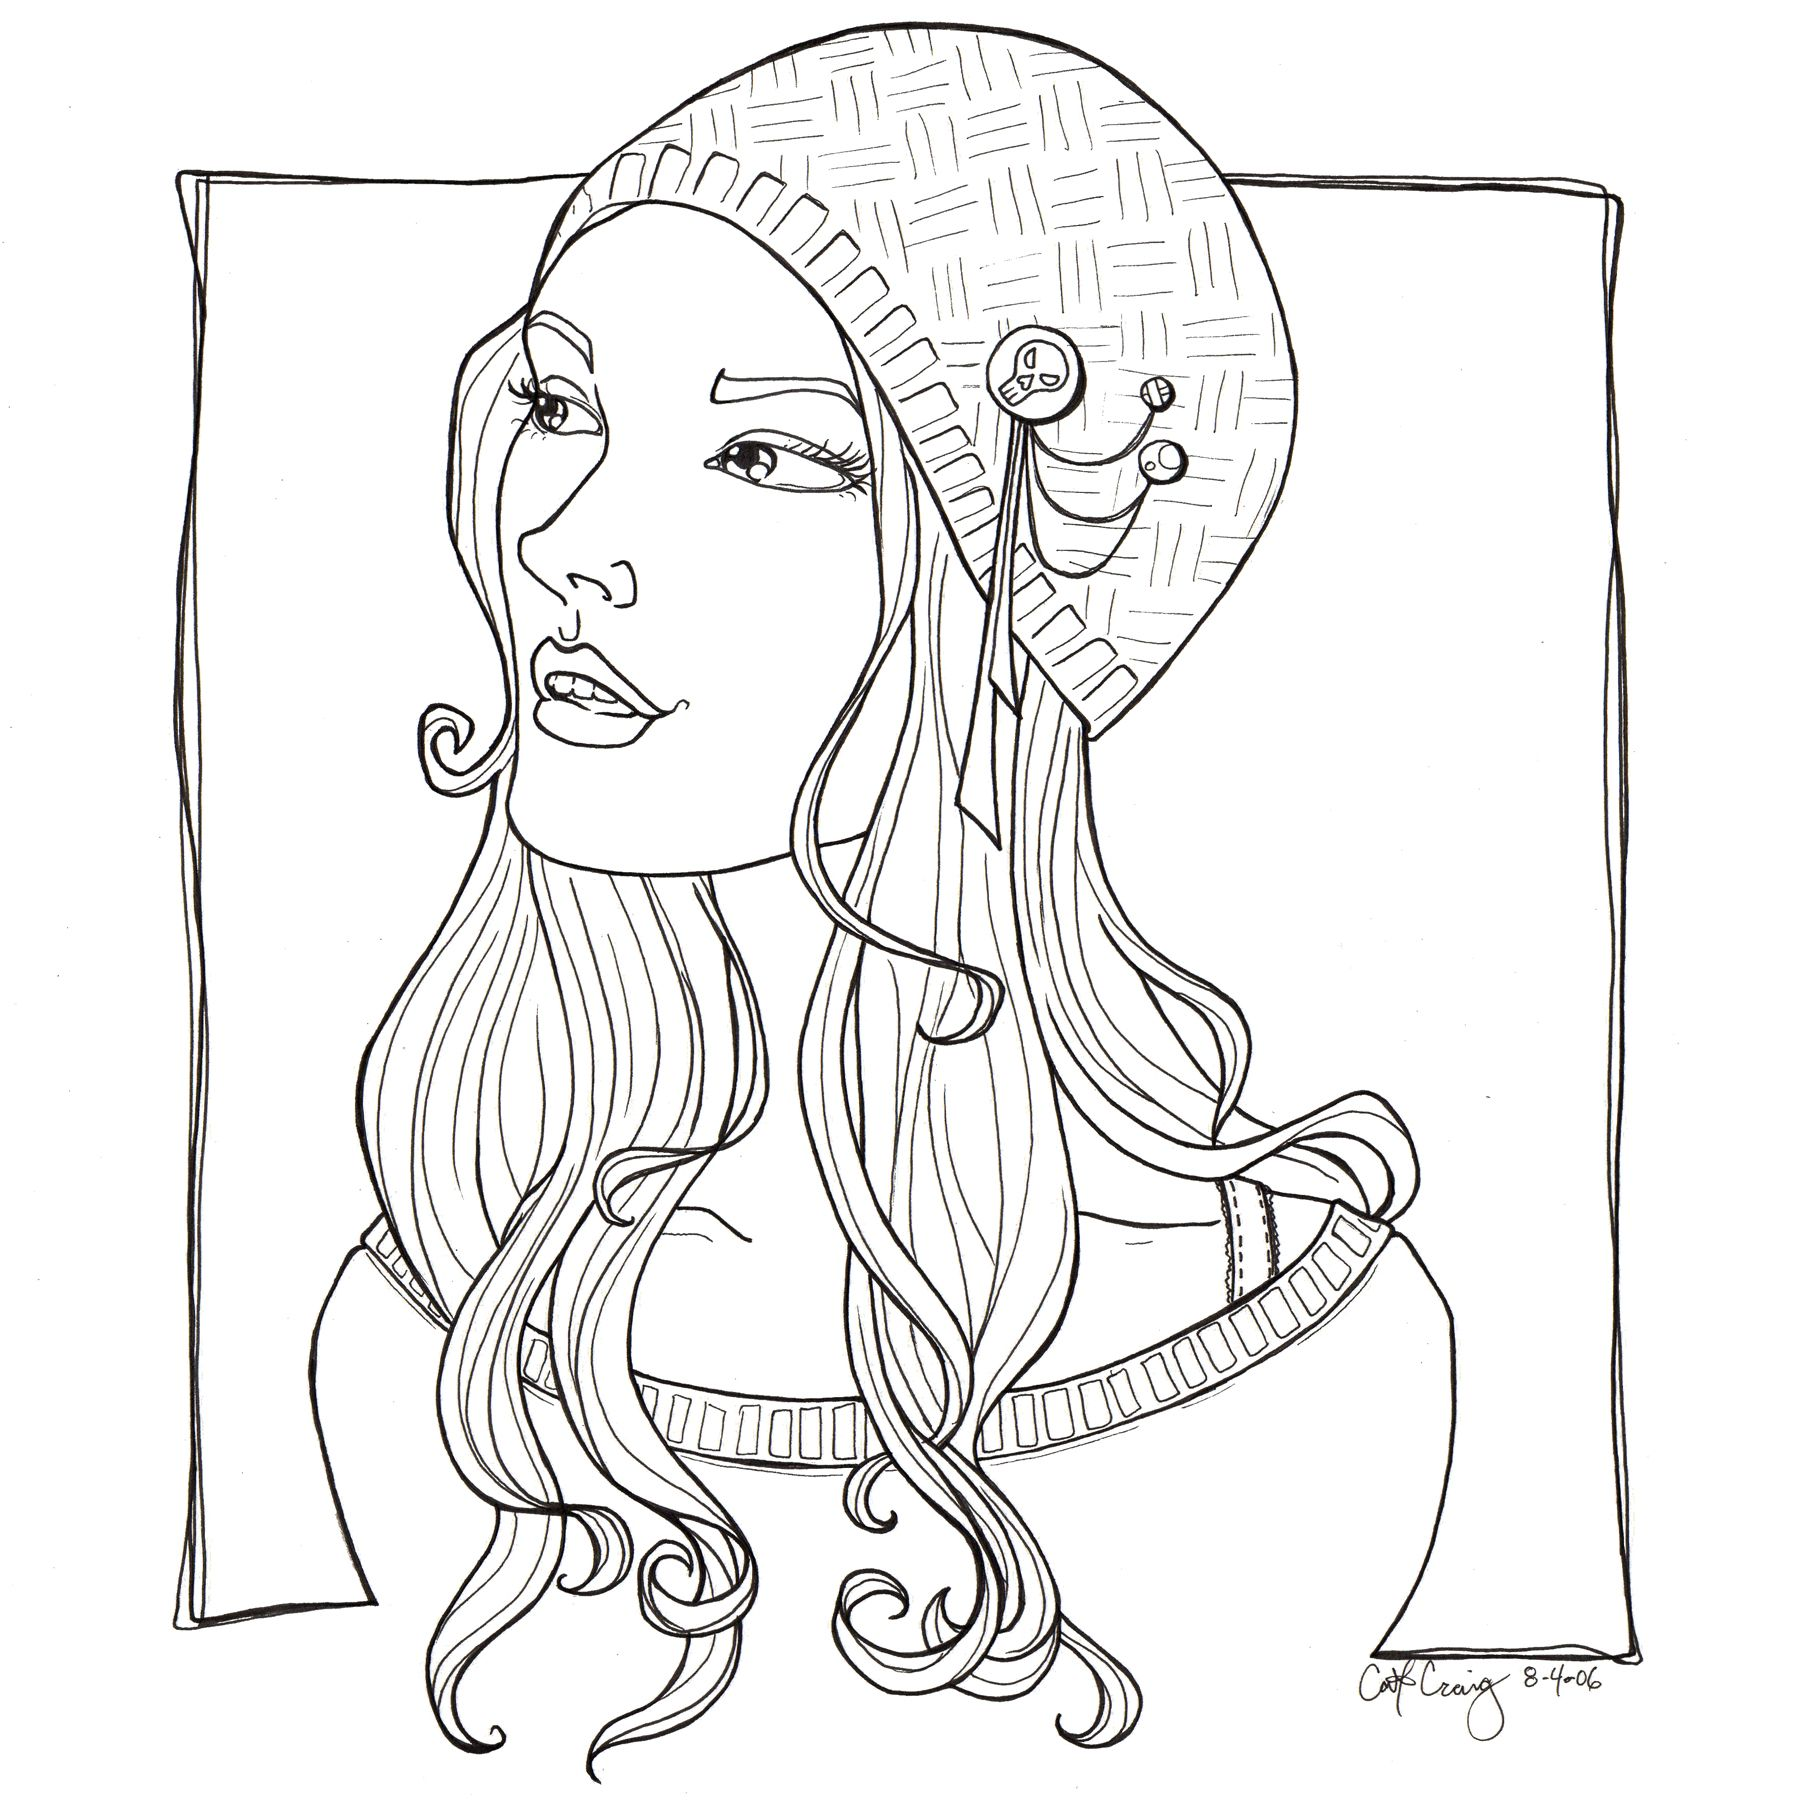 free printable fashion coloring pages for kids color this online pictures and sheets and color a book of fashion coloring pages girl in hat - Beautiful Coloring Pages Girls